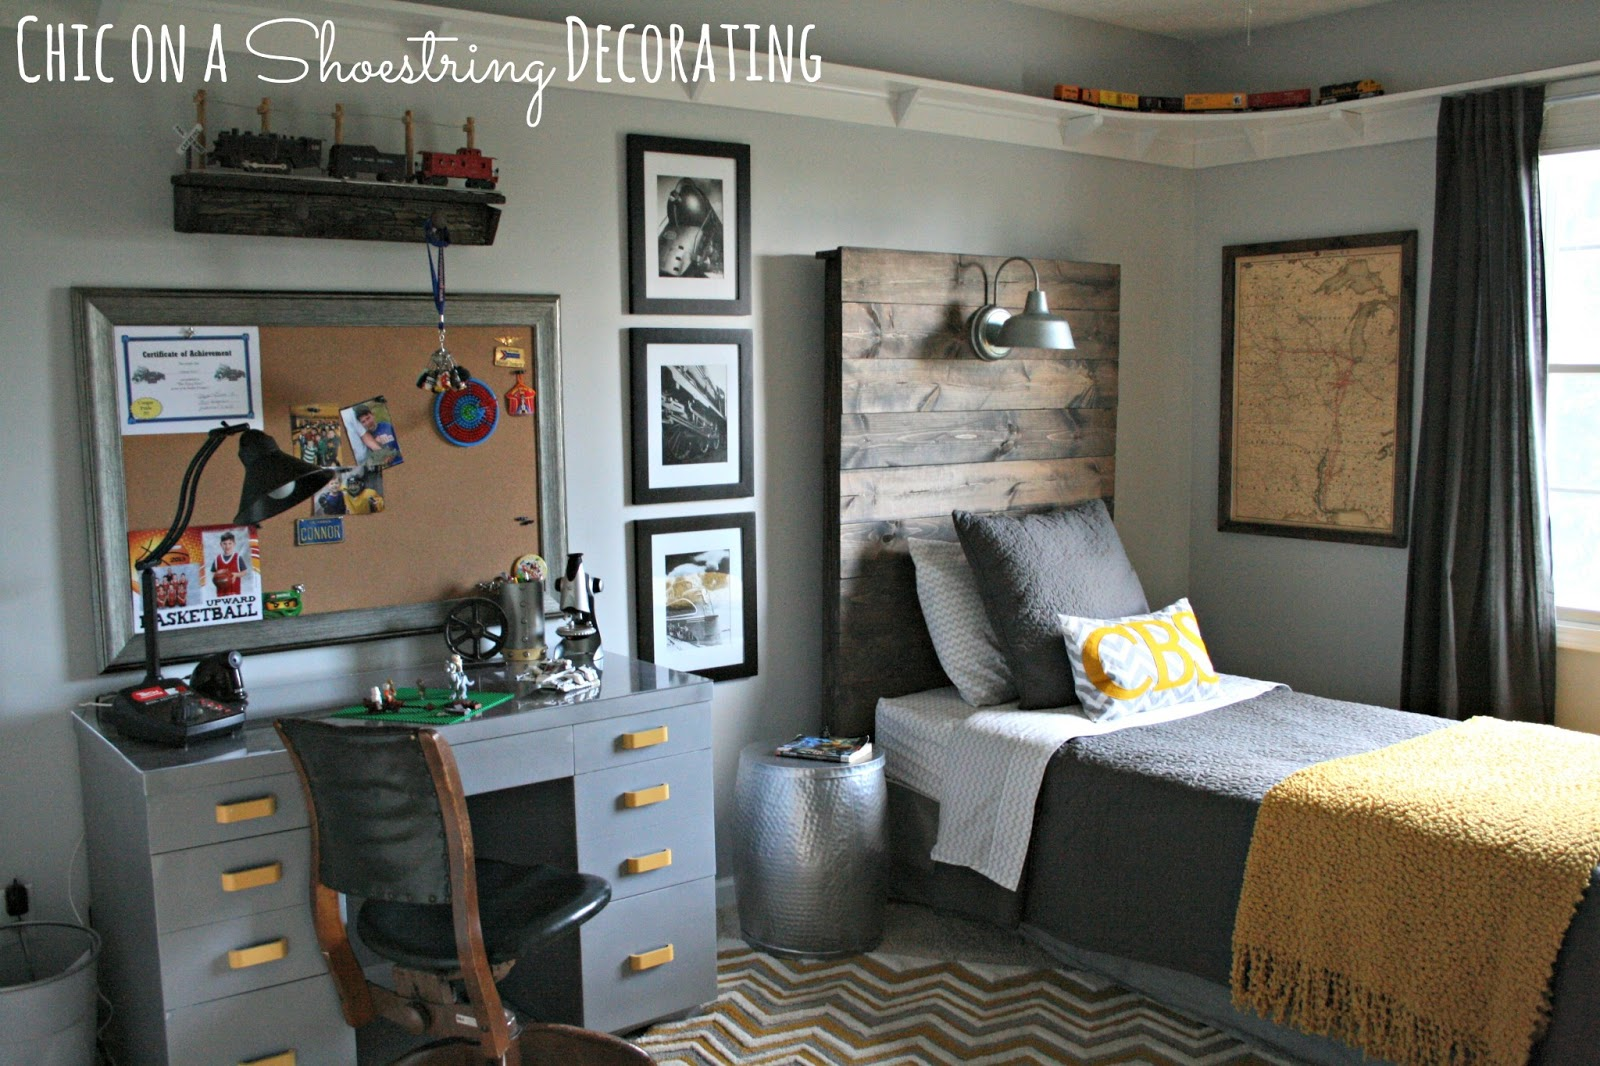 Boys Room Ideas Chic On A Shoestring Decorating Bigger Boy Room Reveal